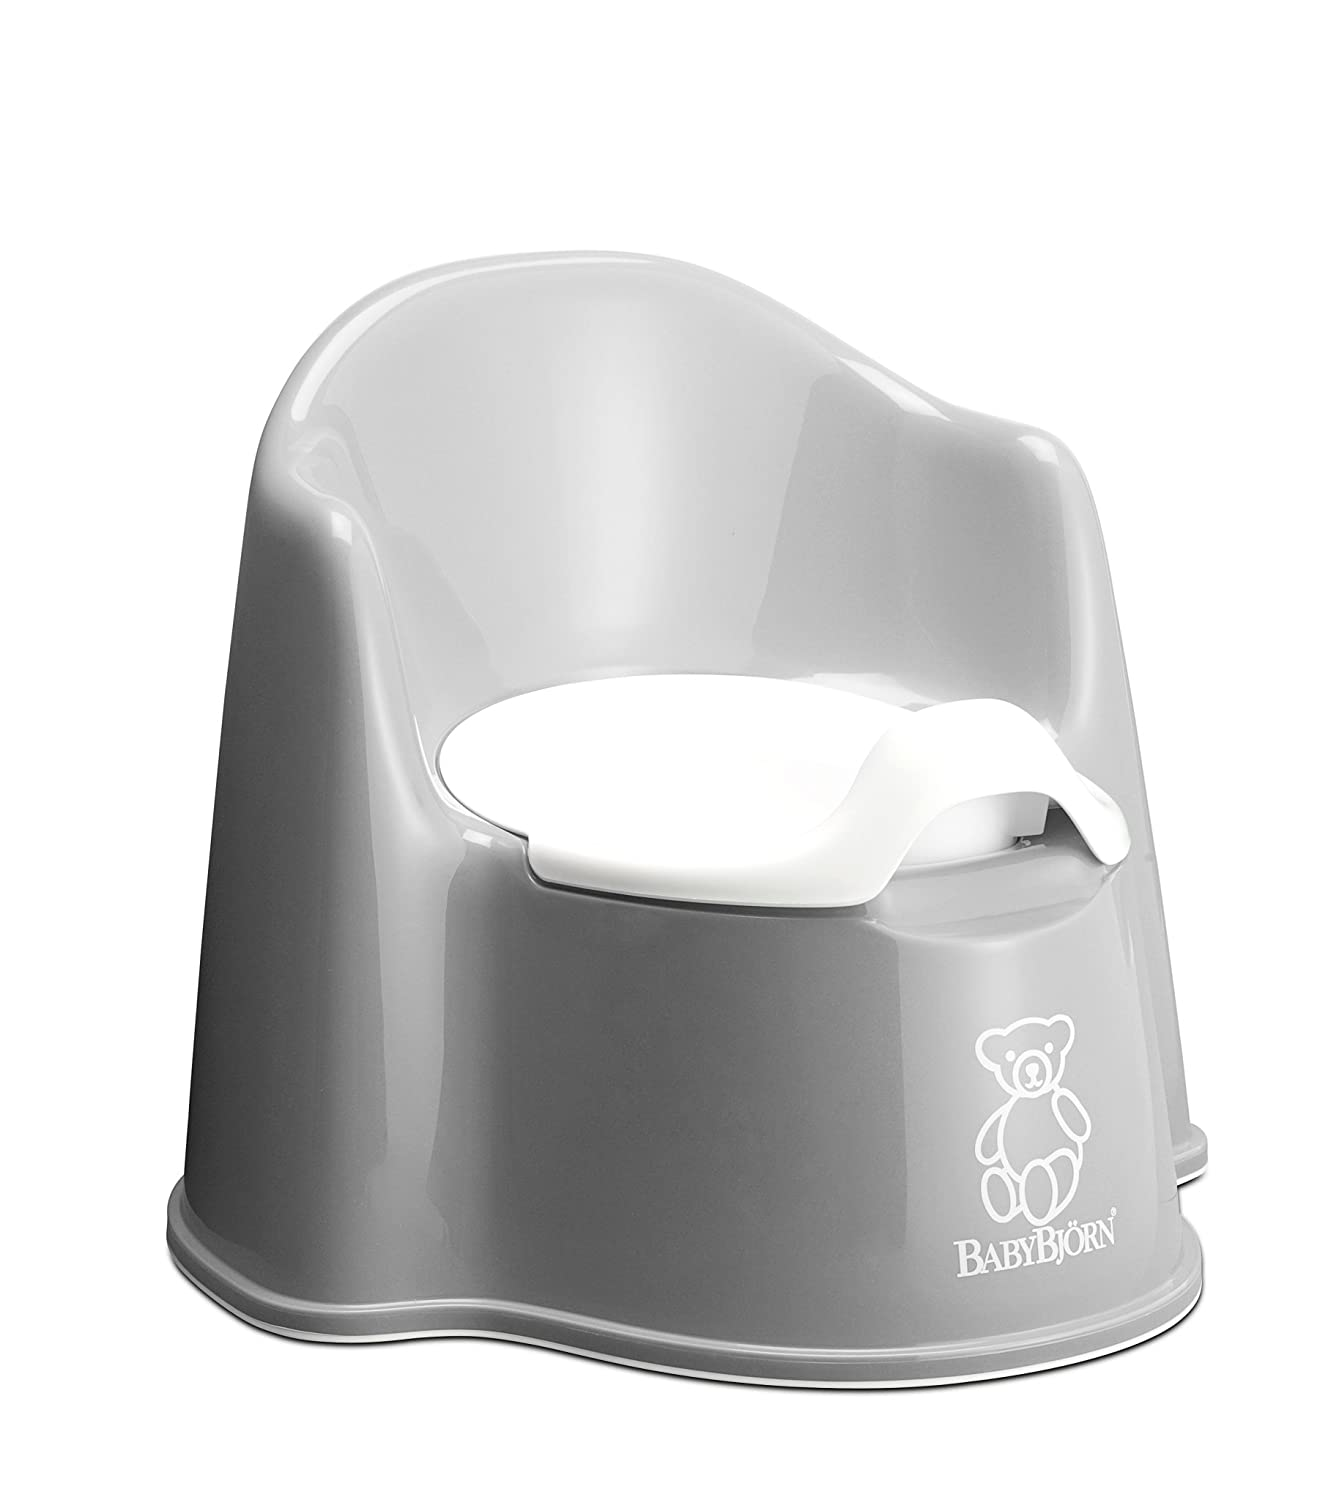 BABYBJORN Potty Chair, Gray 055125US